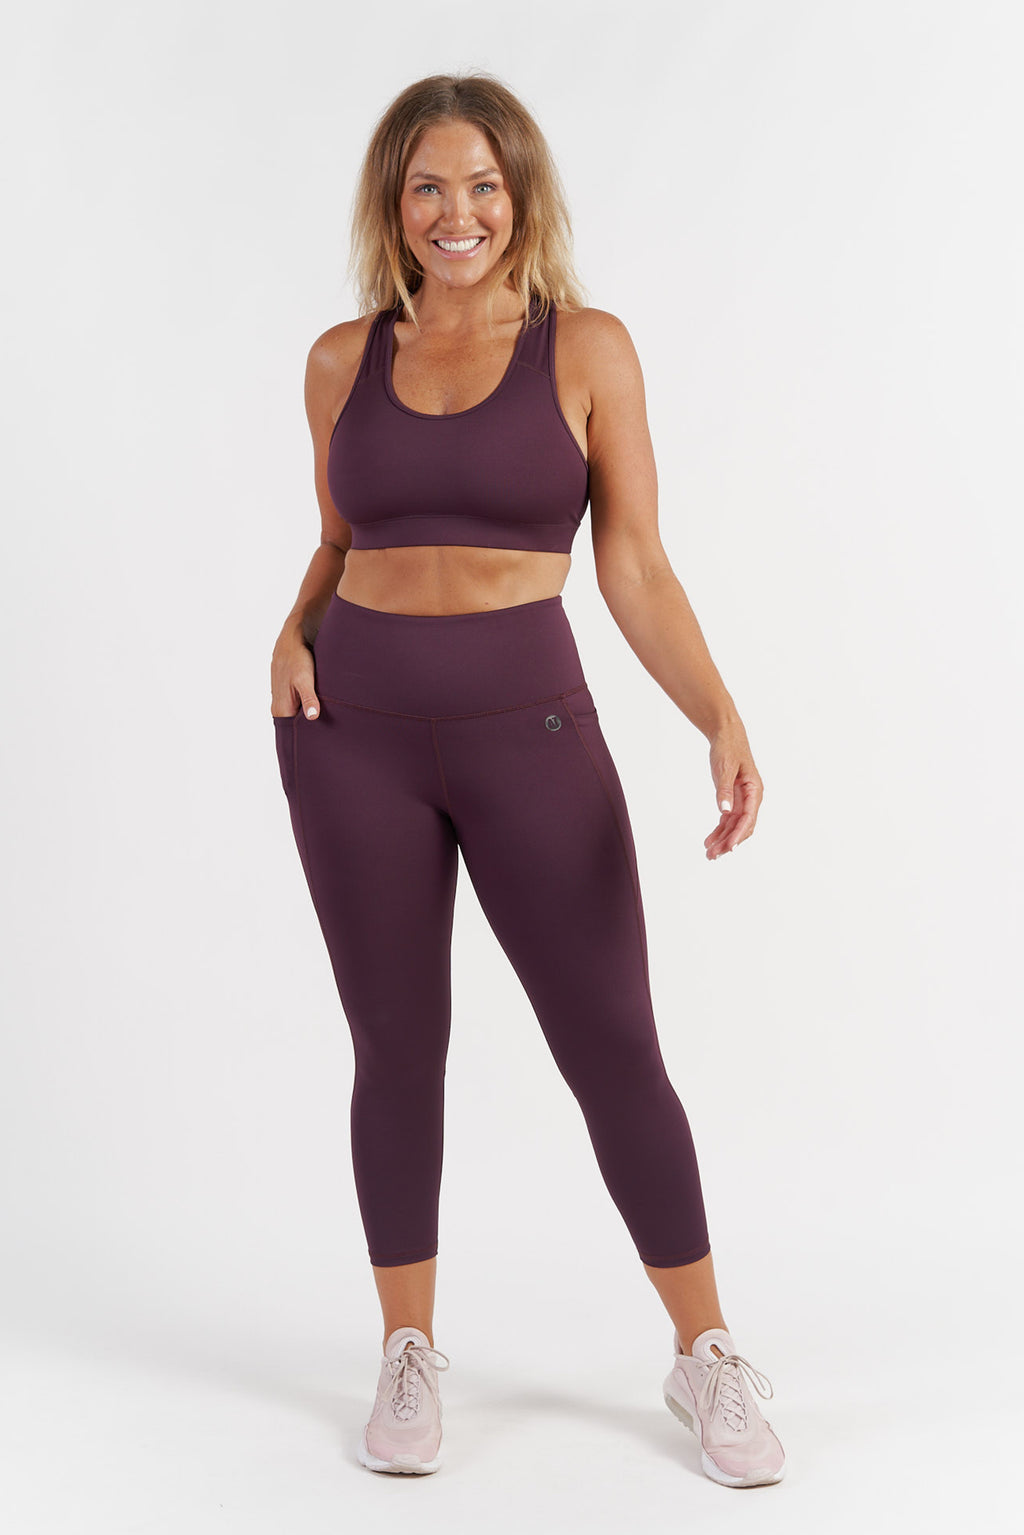 racerback-sports-crop-wine-large-front